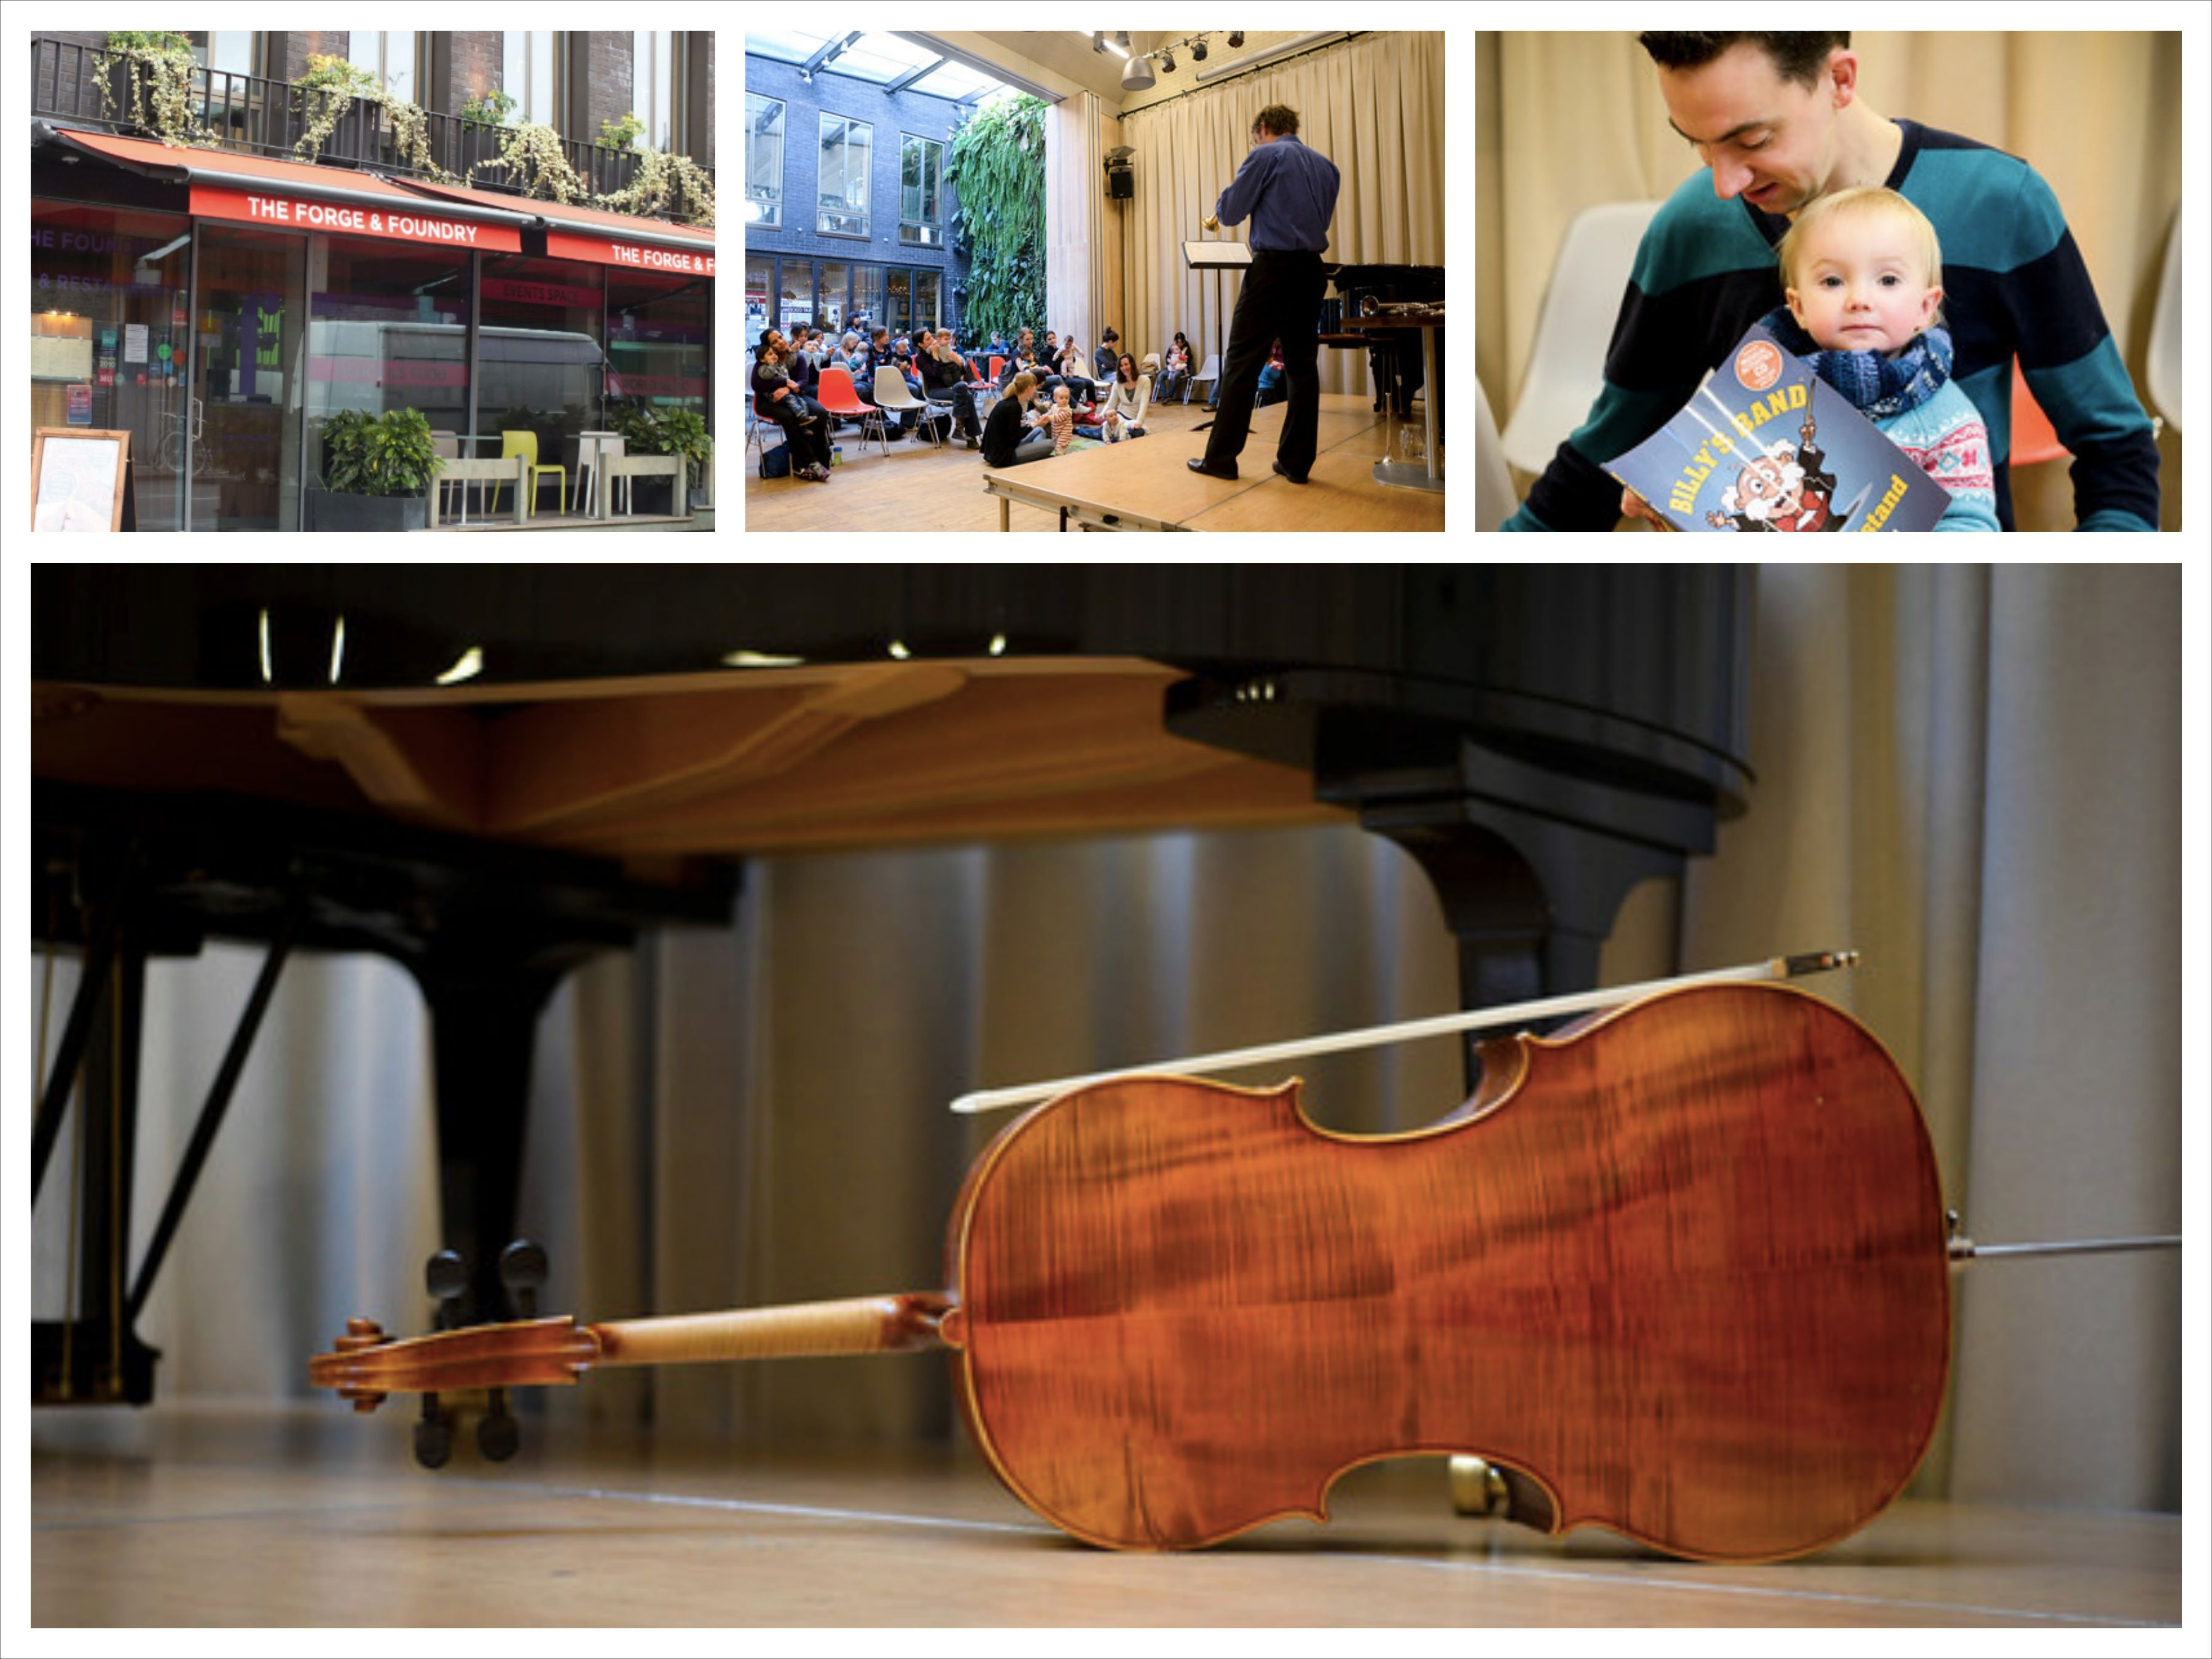 Bach to Baby concerts in Kentish Town, Camden at The Forge and Foundry.